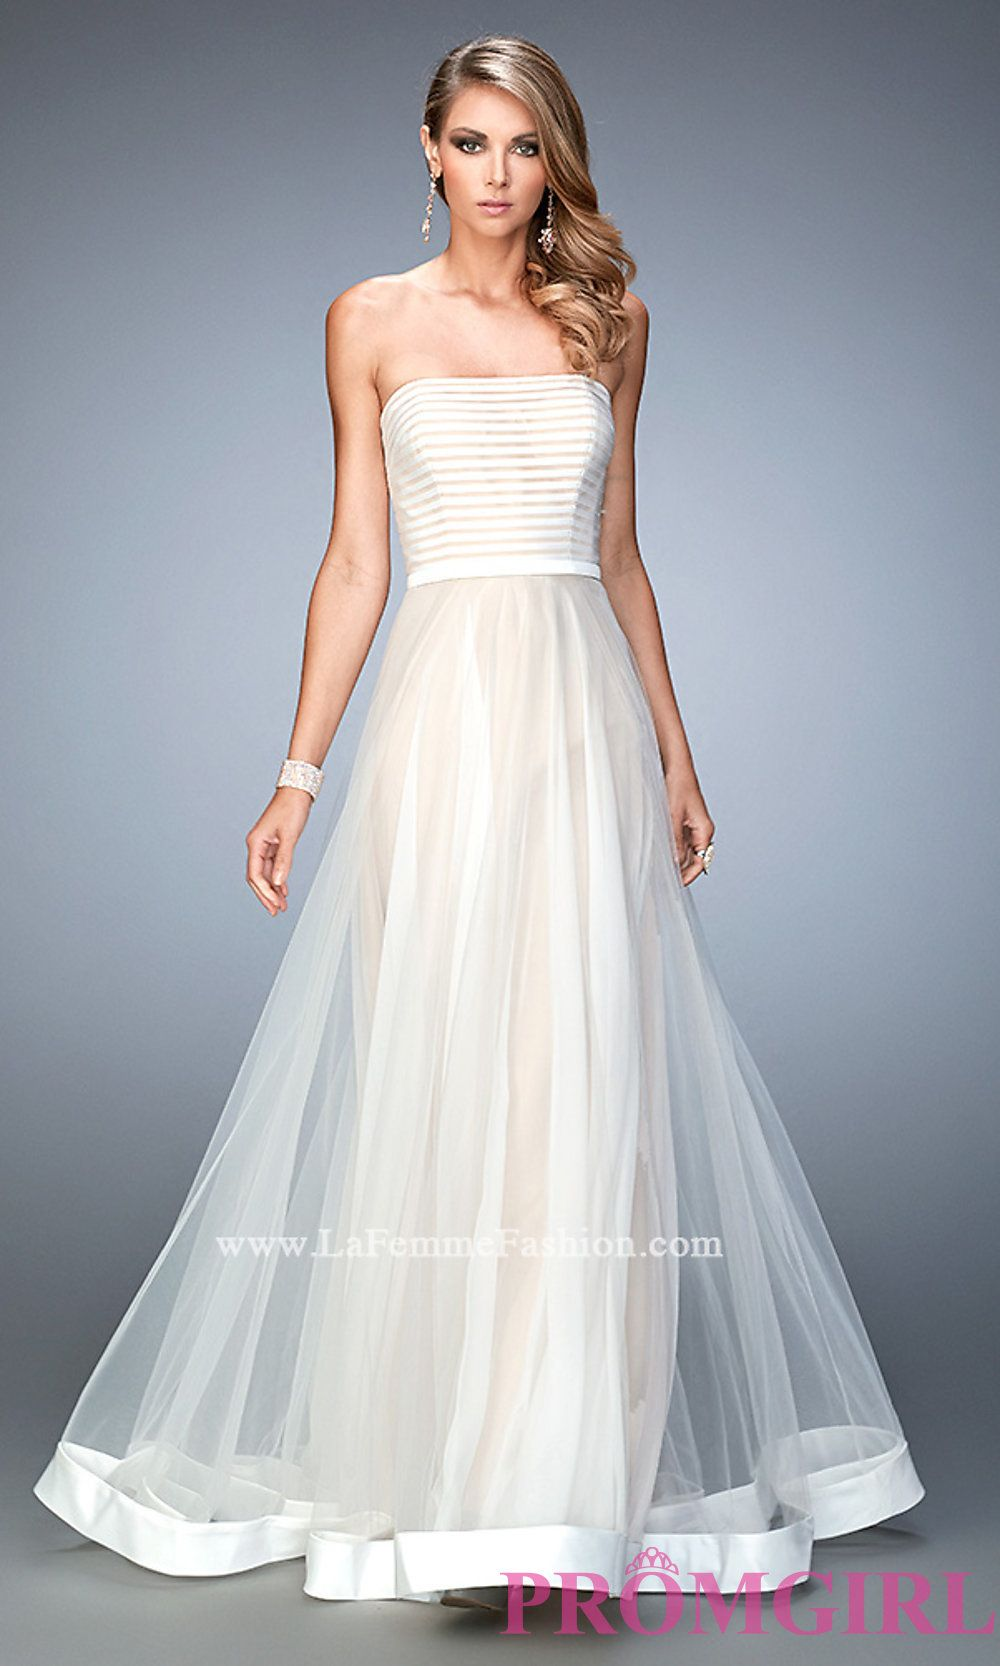 Long strapless prom dress by la femme style lf dresses